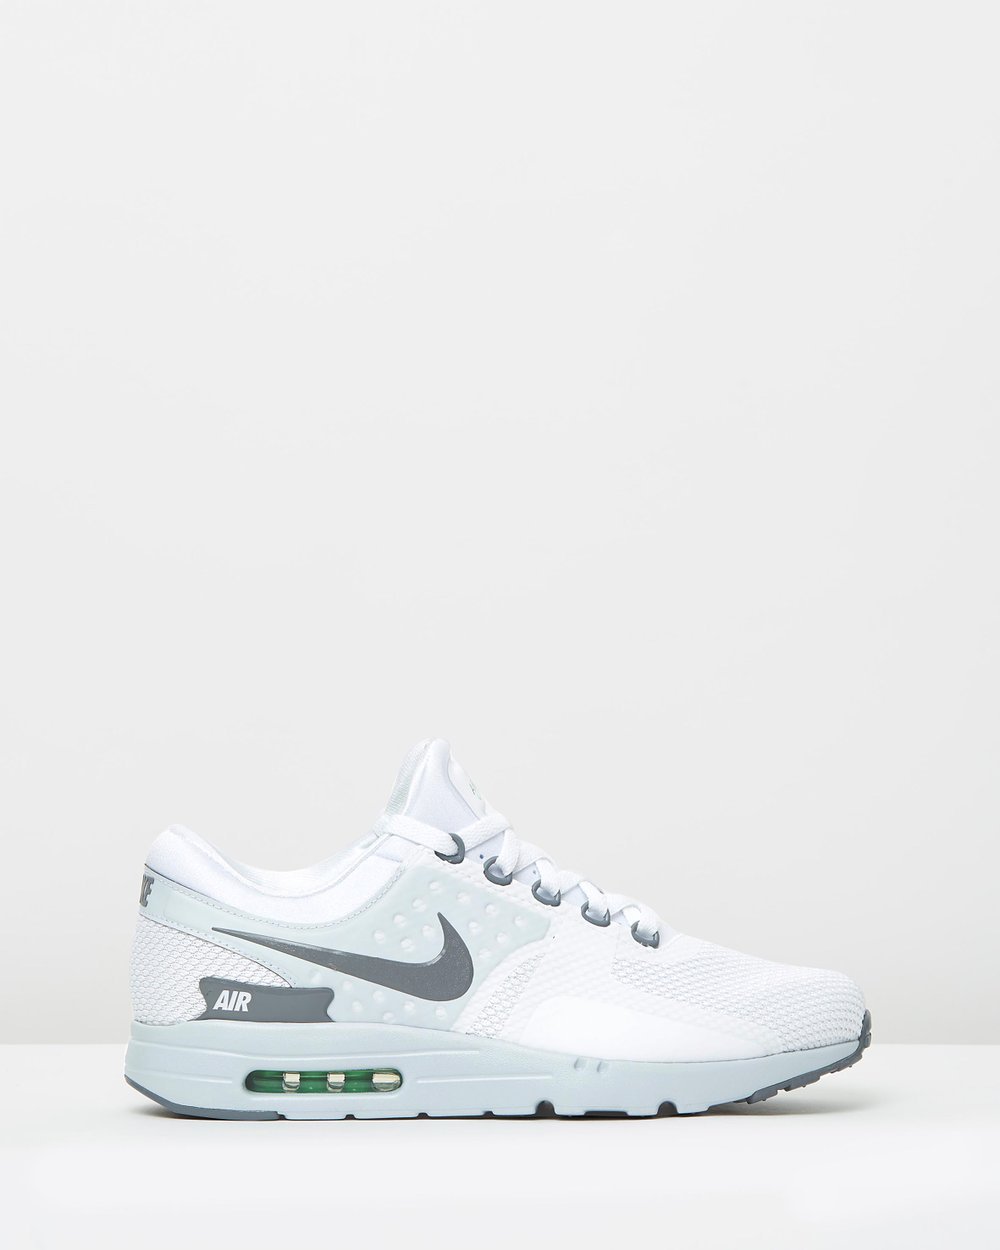 uk availability 8e9db 51cd5 Womens Nike Air Max 2017 Running Shoe By Nike Online The ...